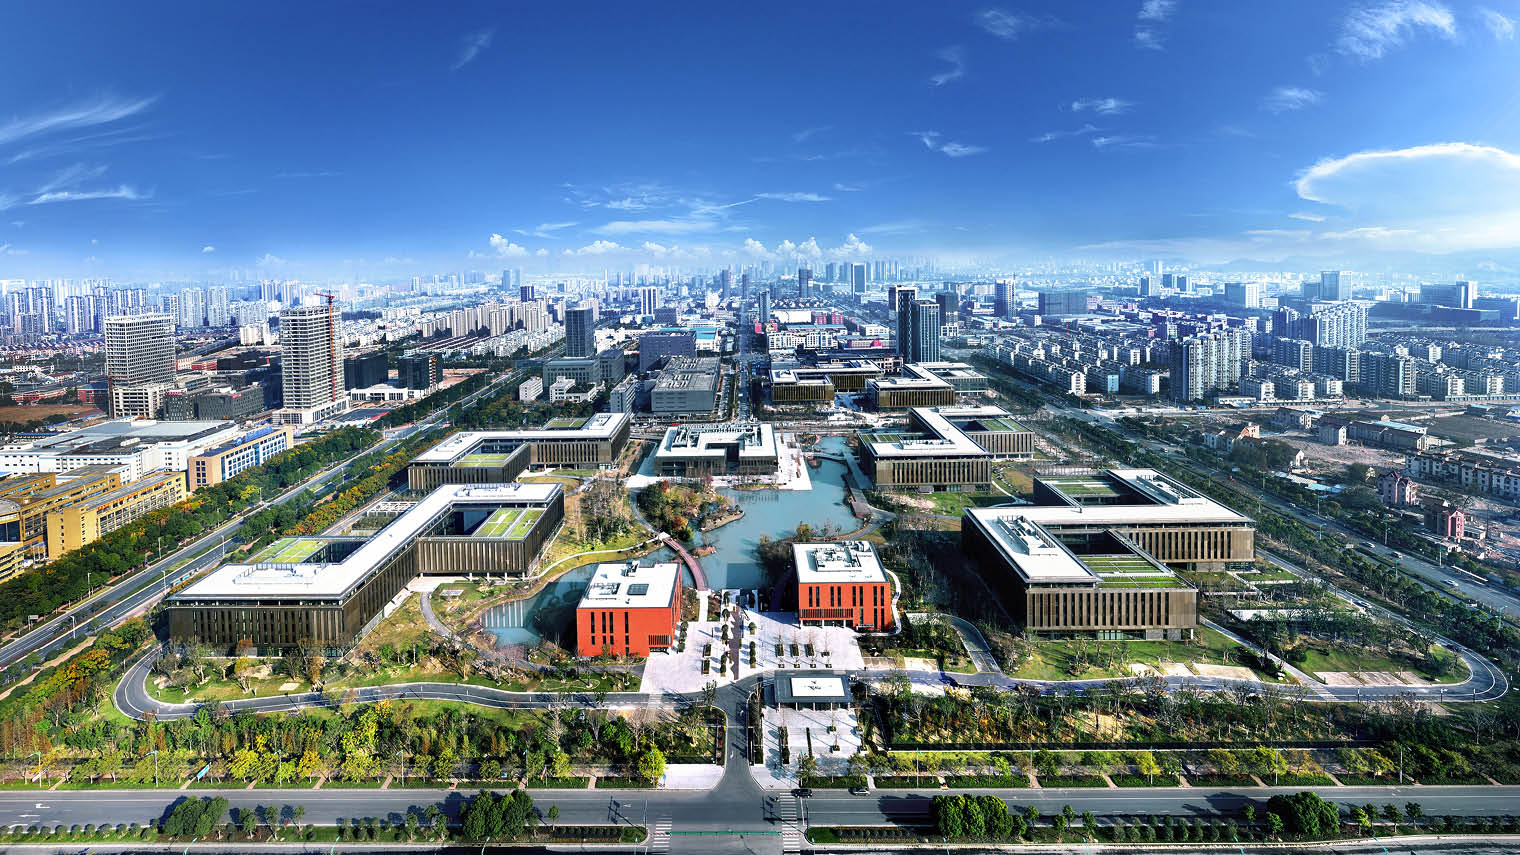 Huawei's research centre in Hangzhou aerial view